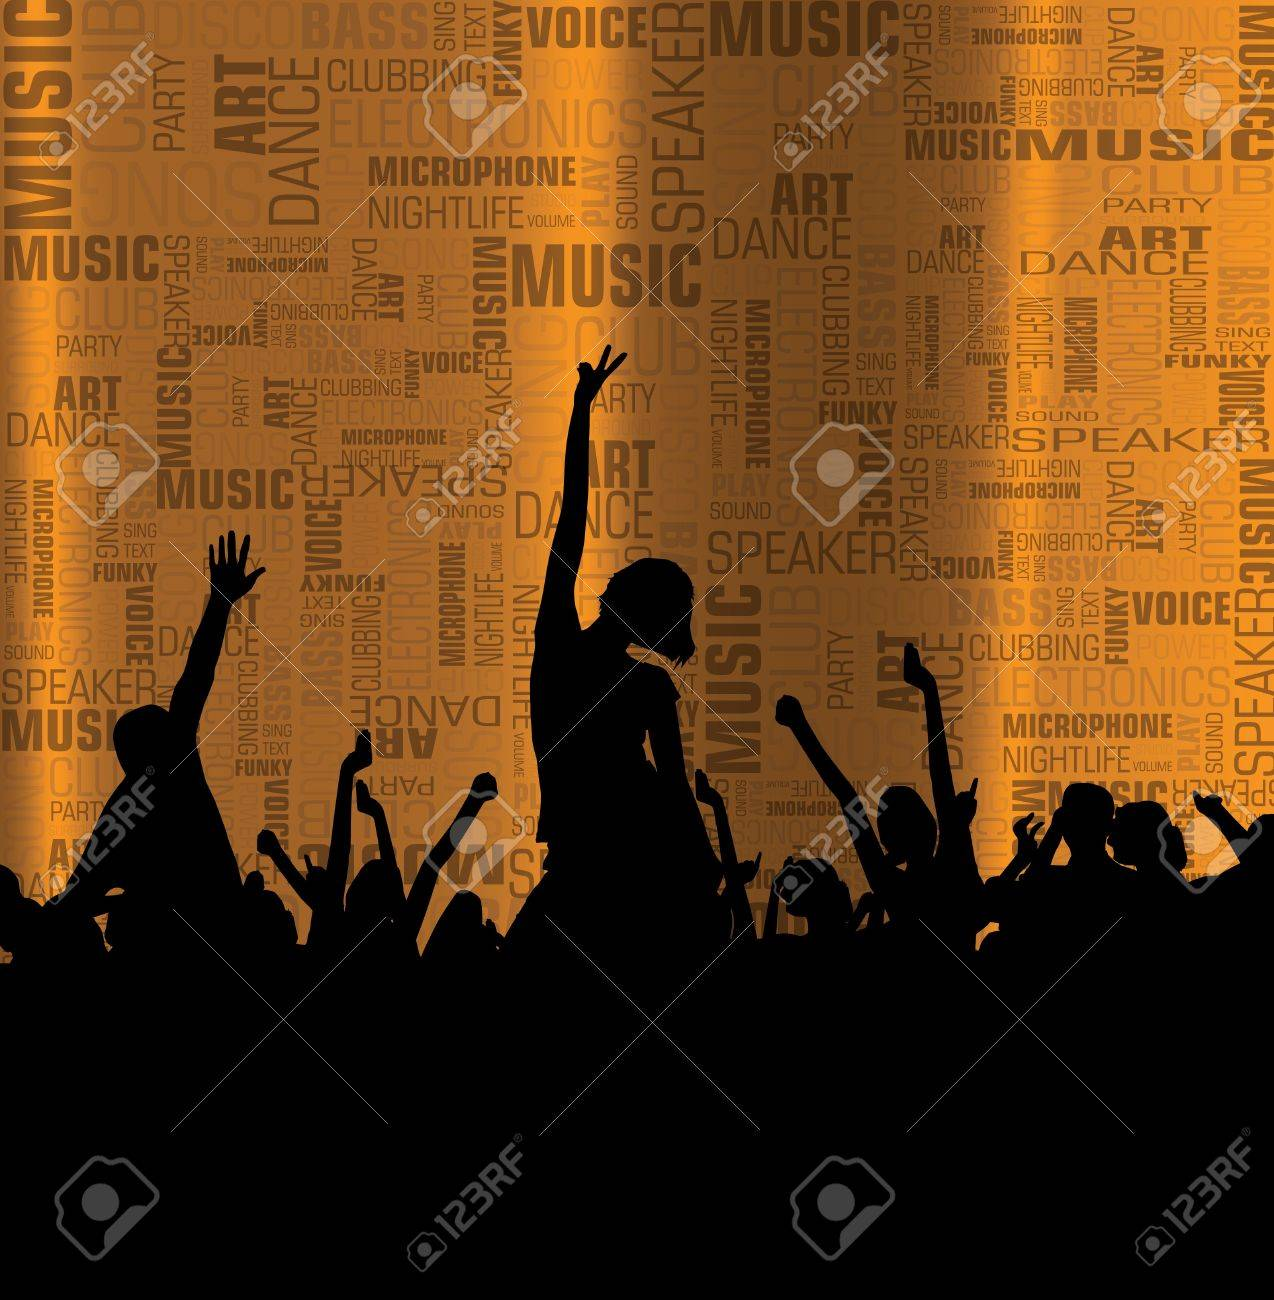 Party event illustration Stock Vector - 12840860